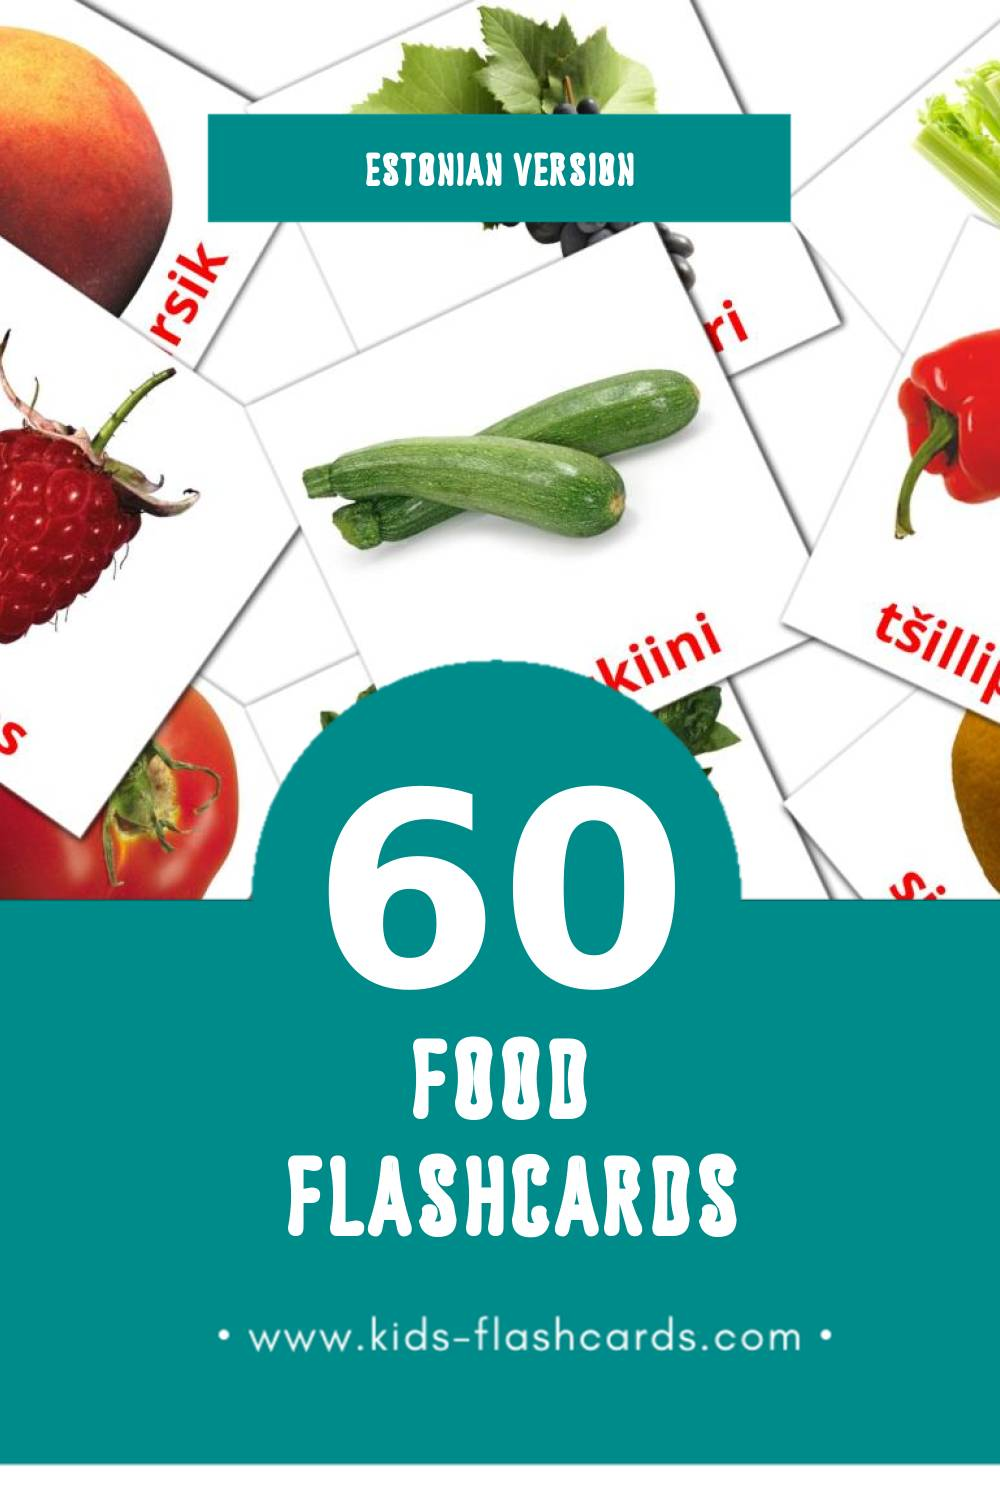 Visual Toit Flashcards for Toddlers (49 cards in Estonian)